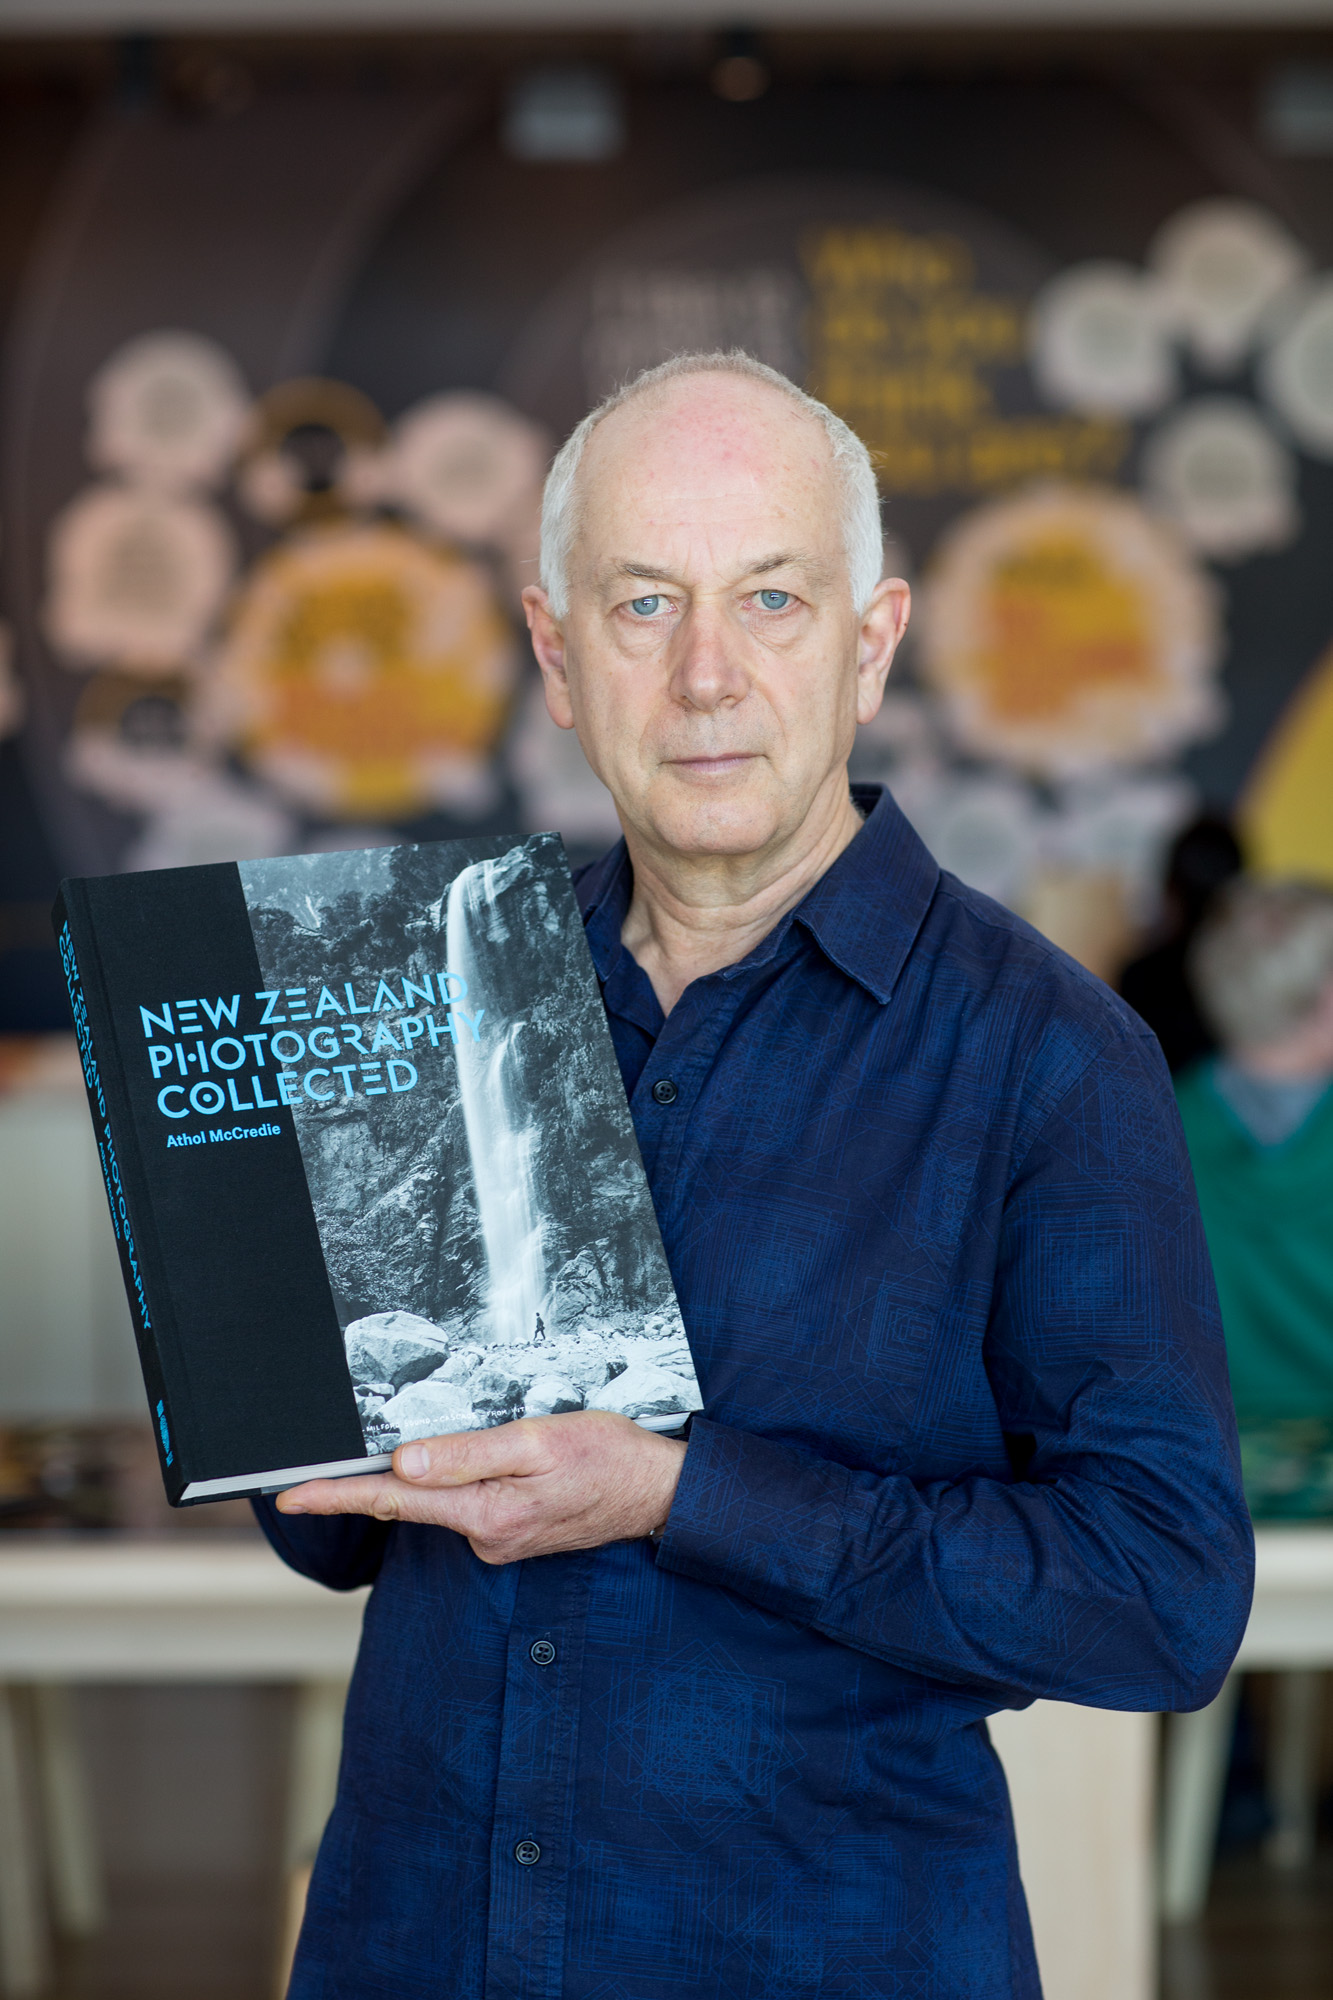 Author Athol McCredie holding a copy of his book, New Zealand Photography Collected.